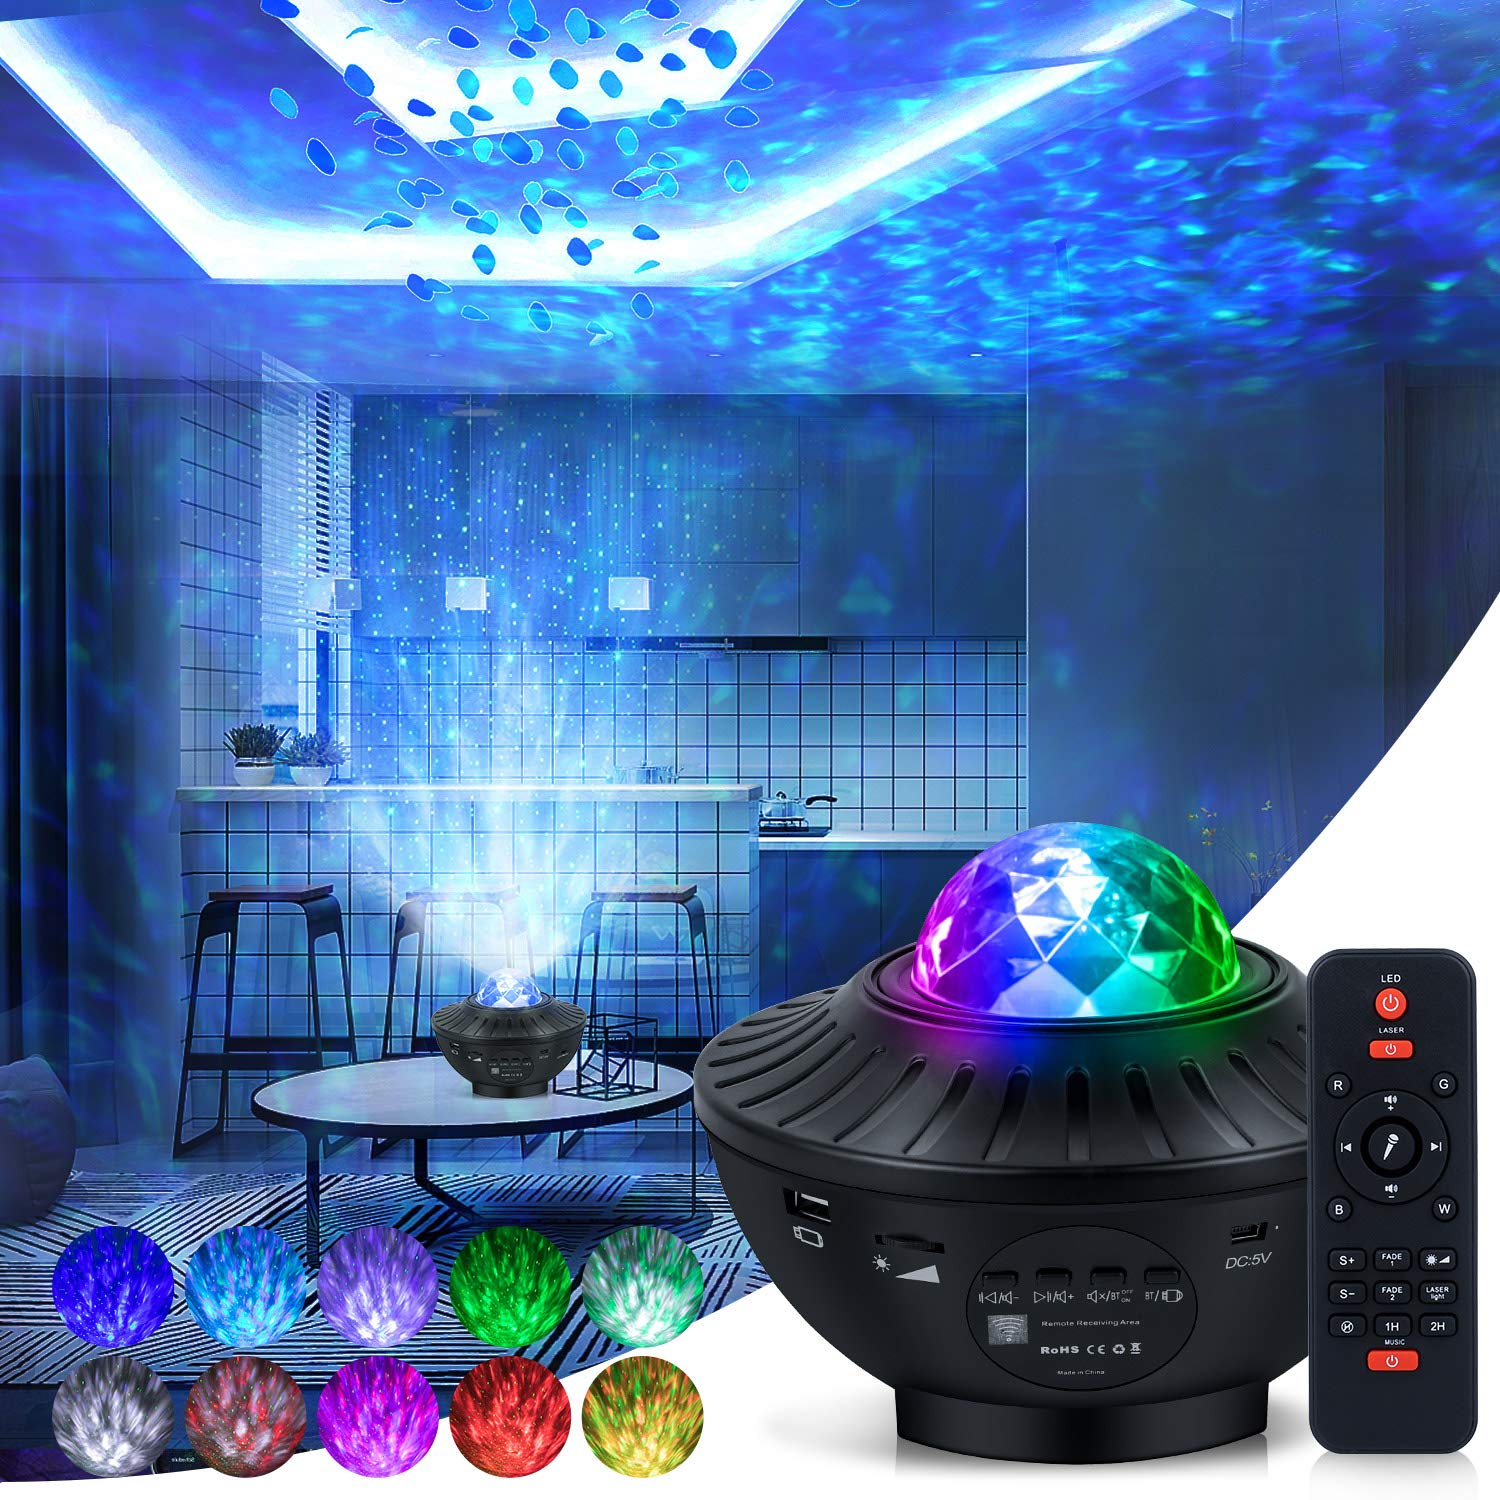 Star Projector Galaxy Night Light Projector Star Light Projector for Bedroom 10 Colors Ambiance with Bluetooth Music Speaker for Kids Adult Rooms Birthday Deeply Sleep Baby Night Light Projector